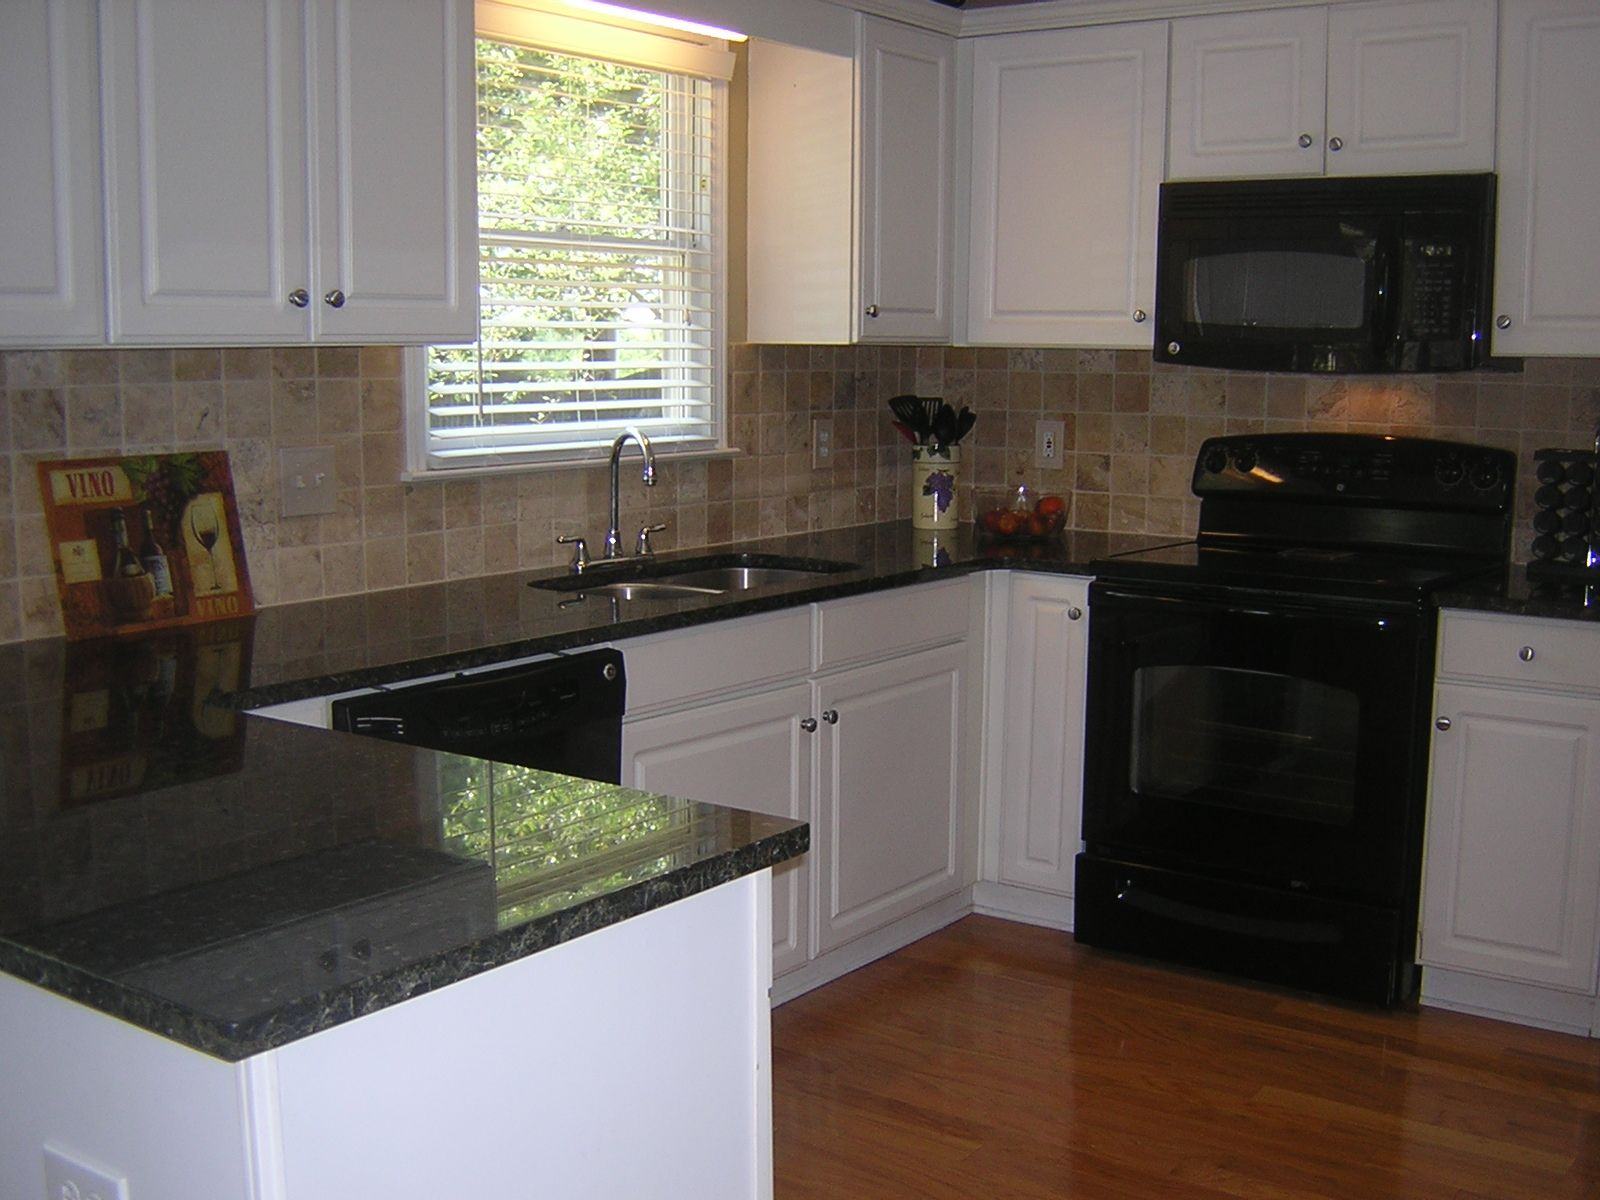 White Kitchen Update Replaced White Laminate Countertops With Verde Butterfly Granite And Added A Travertine